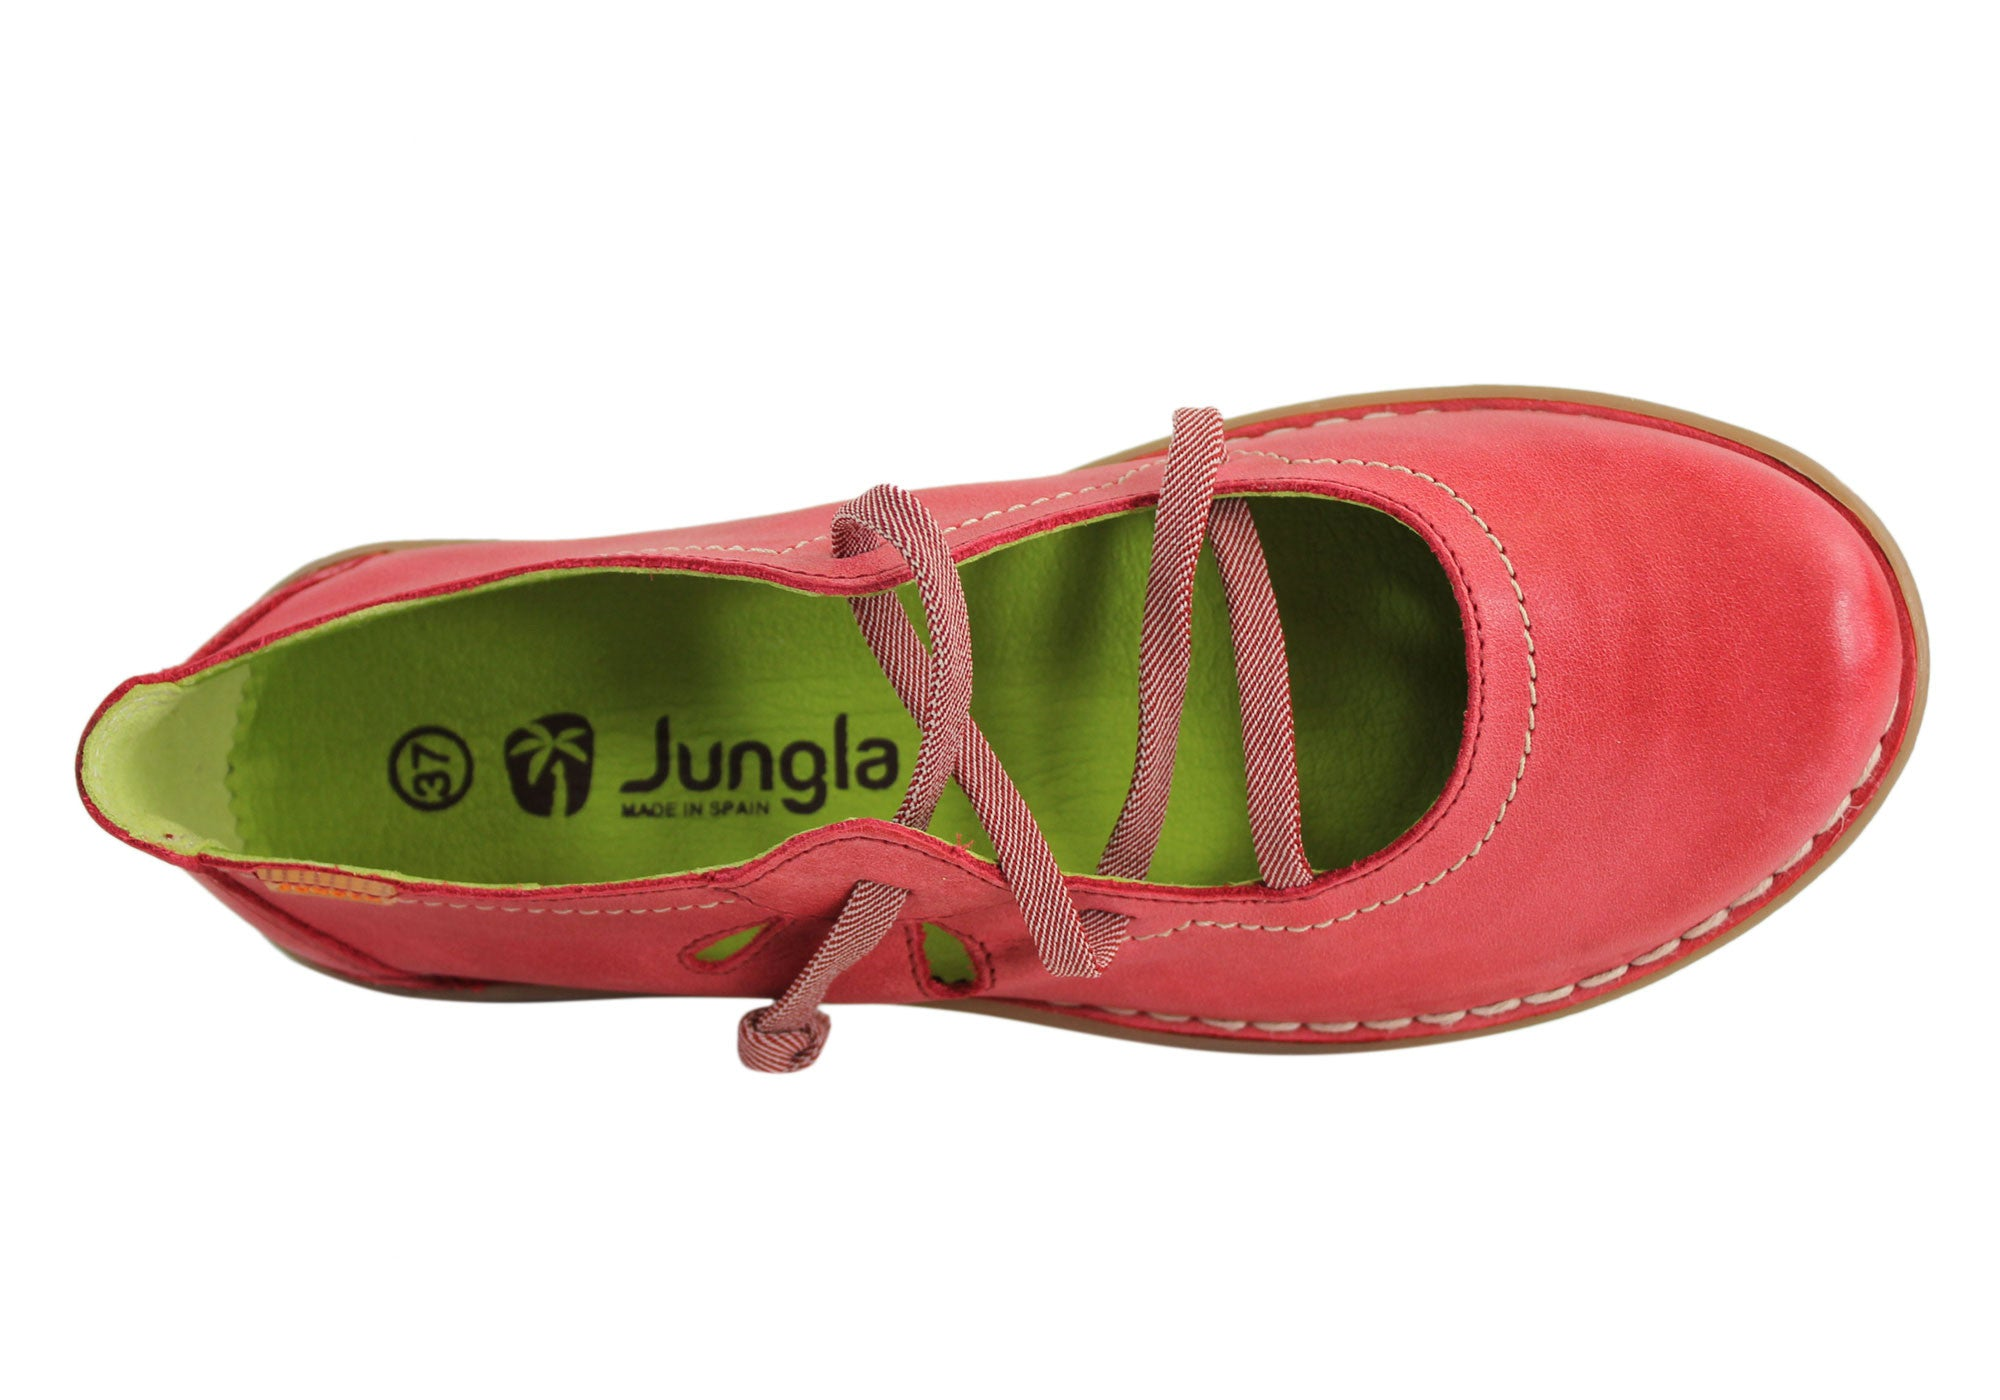 2eacf83a3a61c Jungla 5120 Womens Soft Leather Comfortable Casual Shoes Made In ...